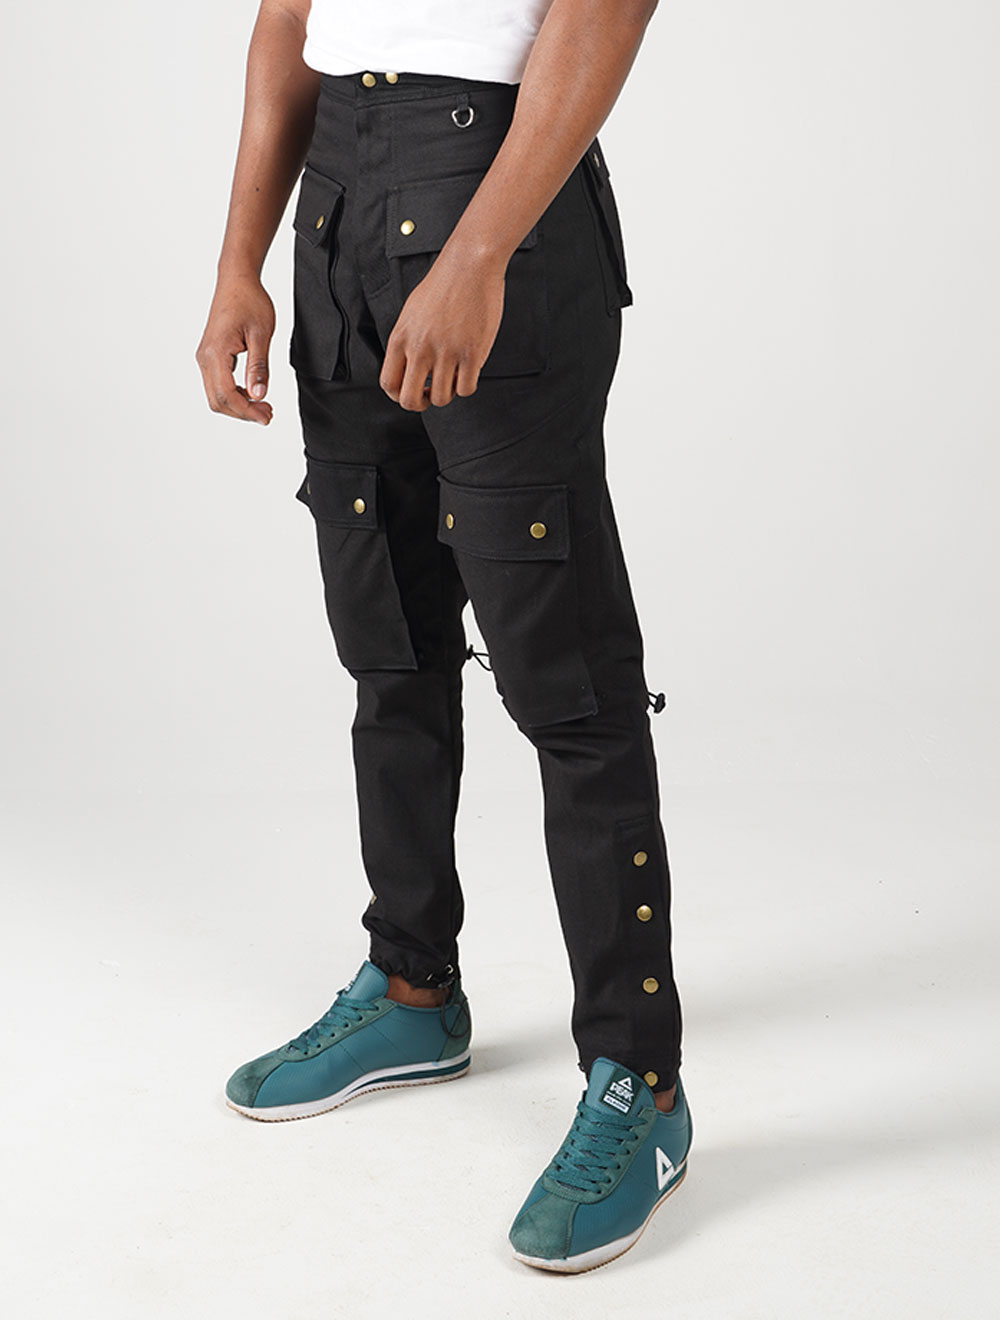 Inkunz'emnyama tech cargo pants – Side